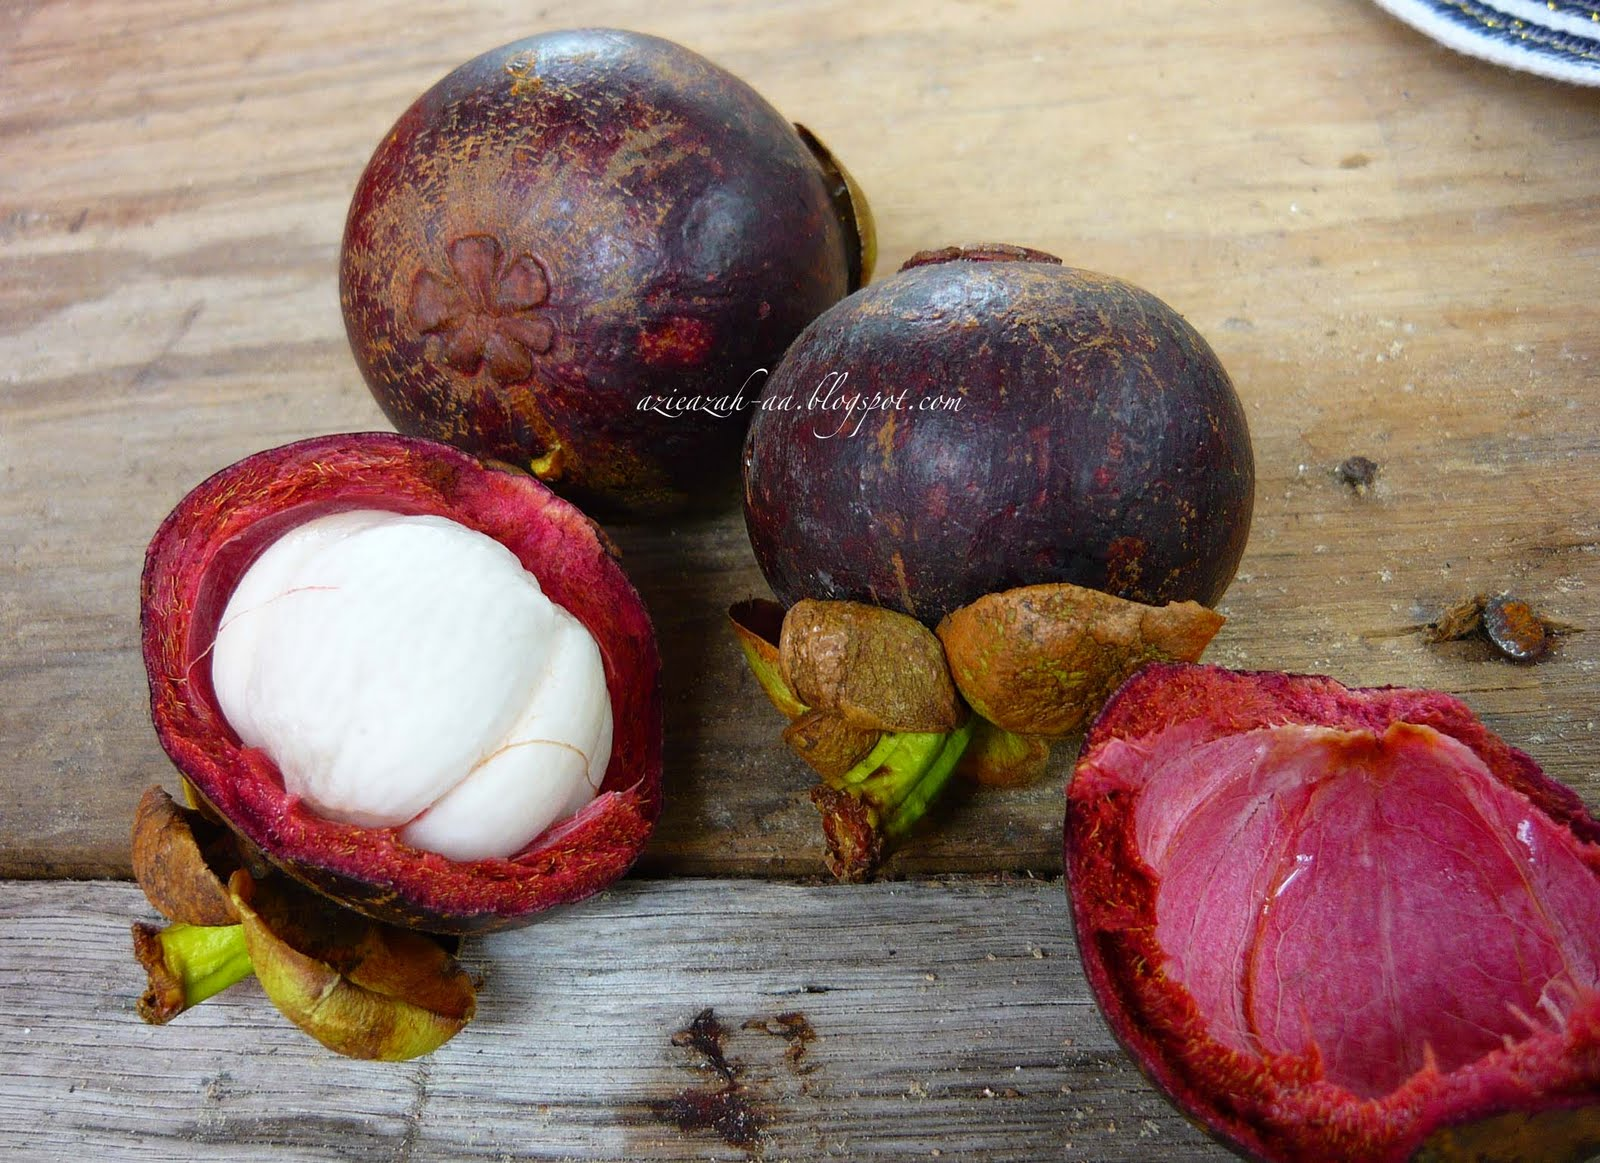 Mangosteen is eaten together with (excessive) durian, to overcome the heatiness.